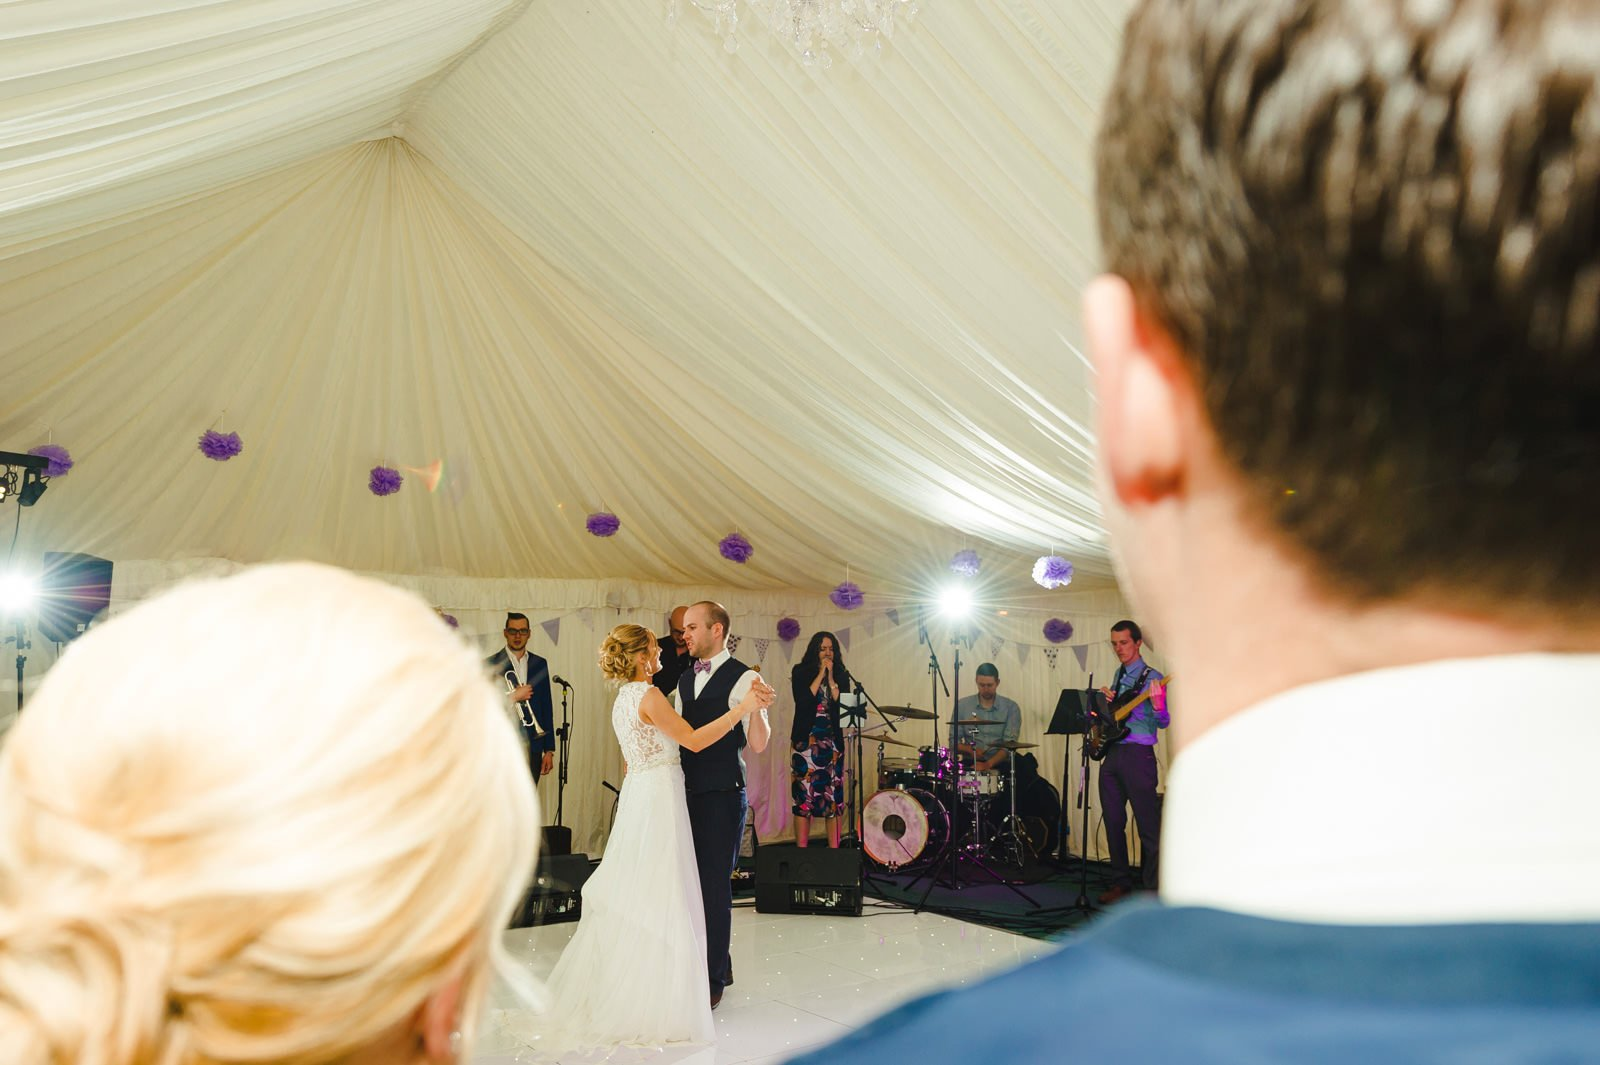 Millers Of Netley wedding, Dorrington, Shrewsbury | Emma + Ben 92